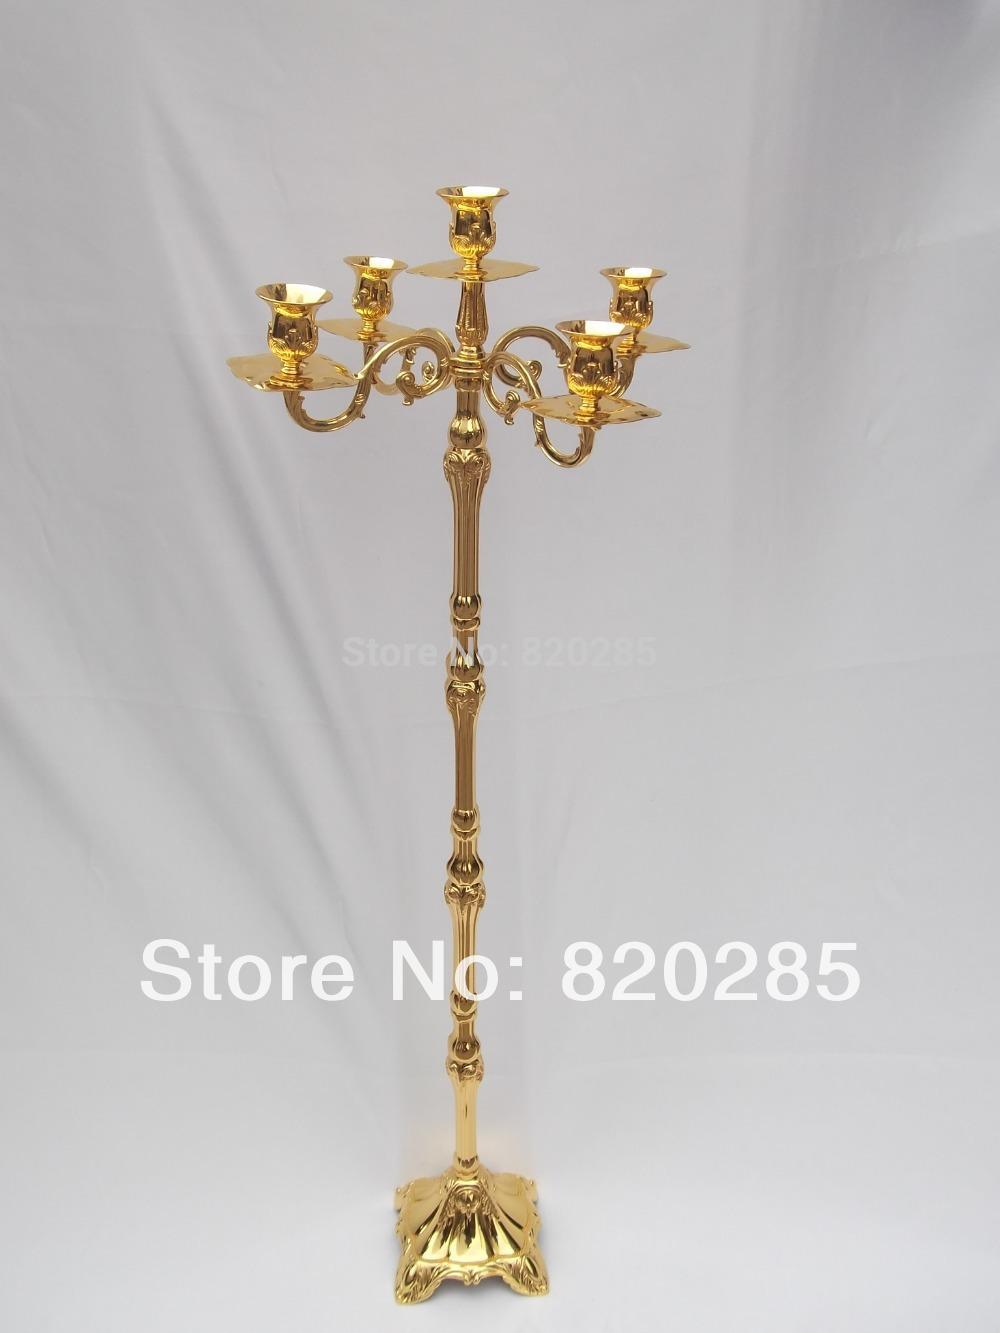 Wholesale Tallest 103cm Height Shiny Golden Plated Centerpiece ...